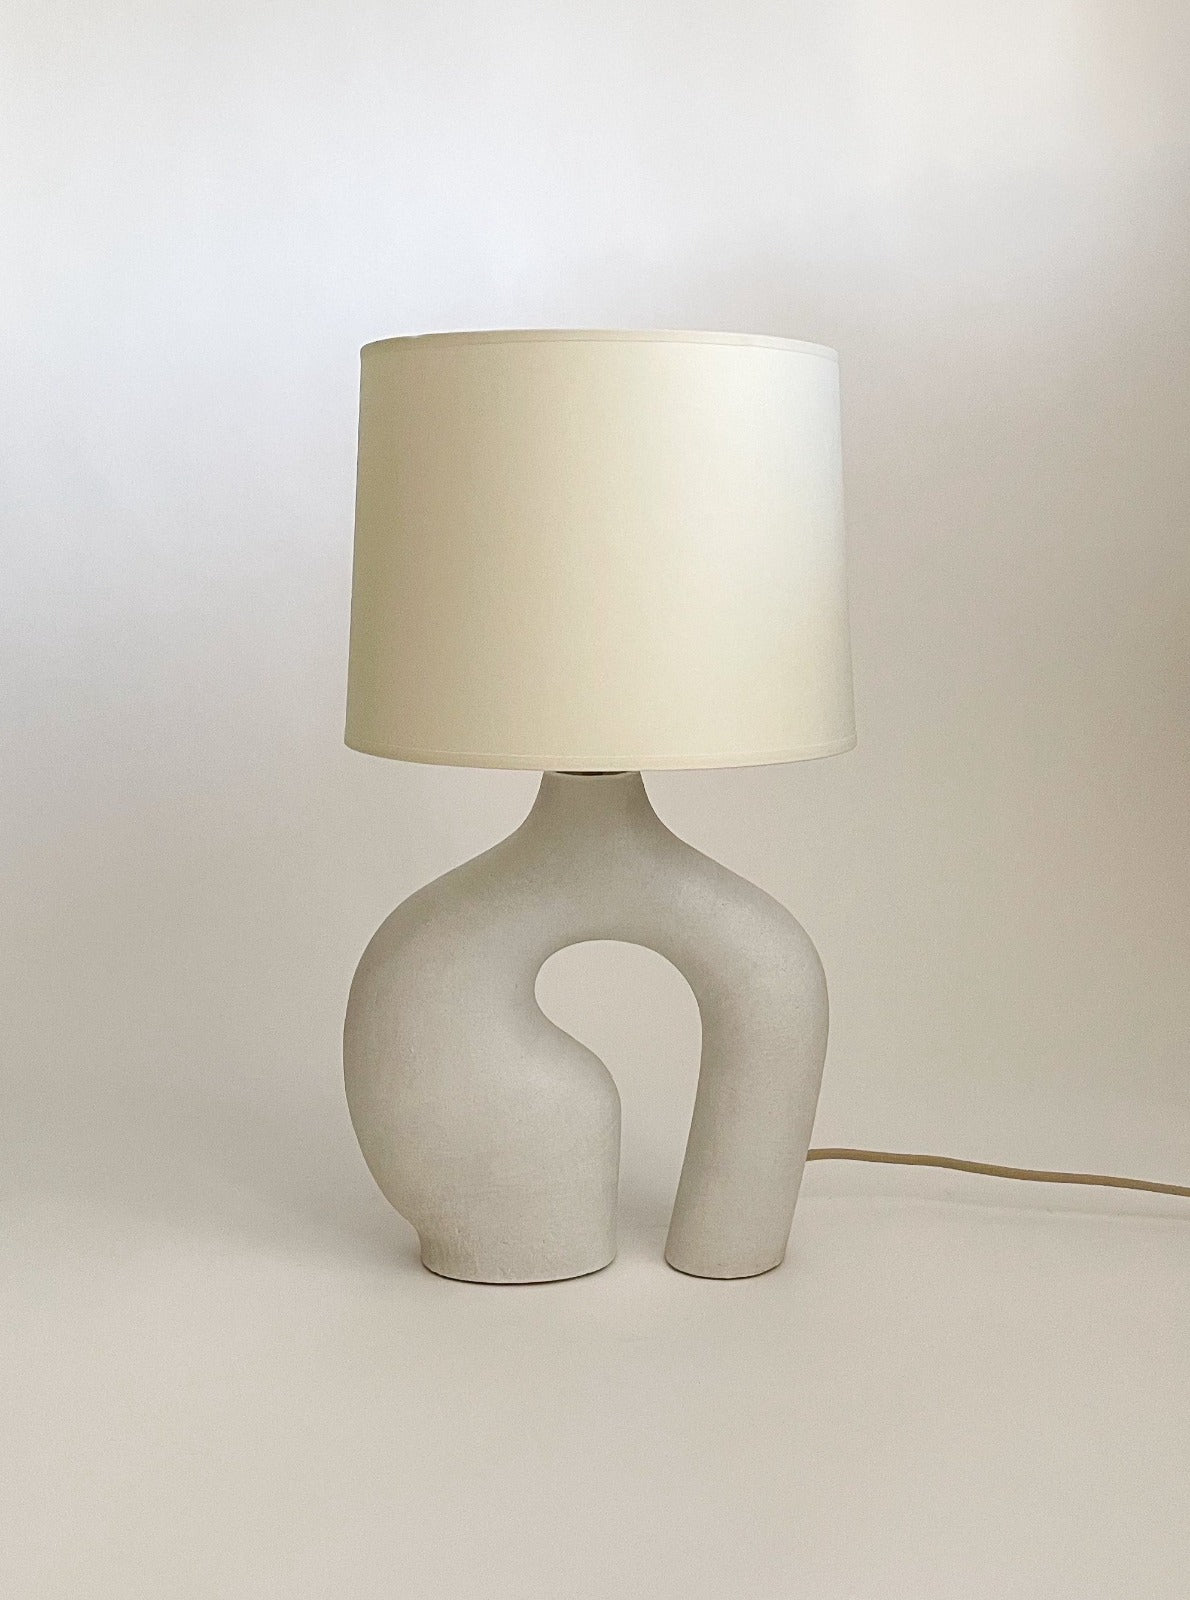 Kassandra thatcher circle loop ceramic lamp